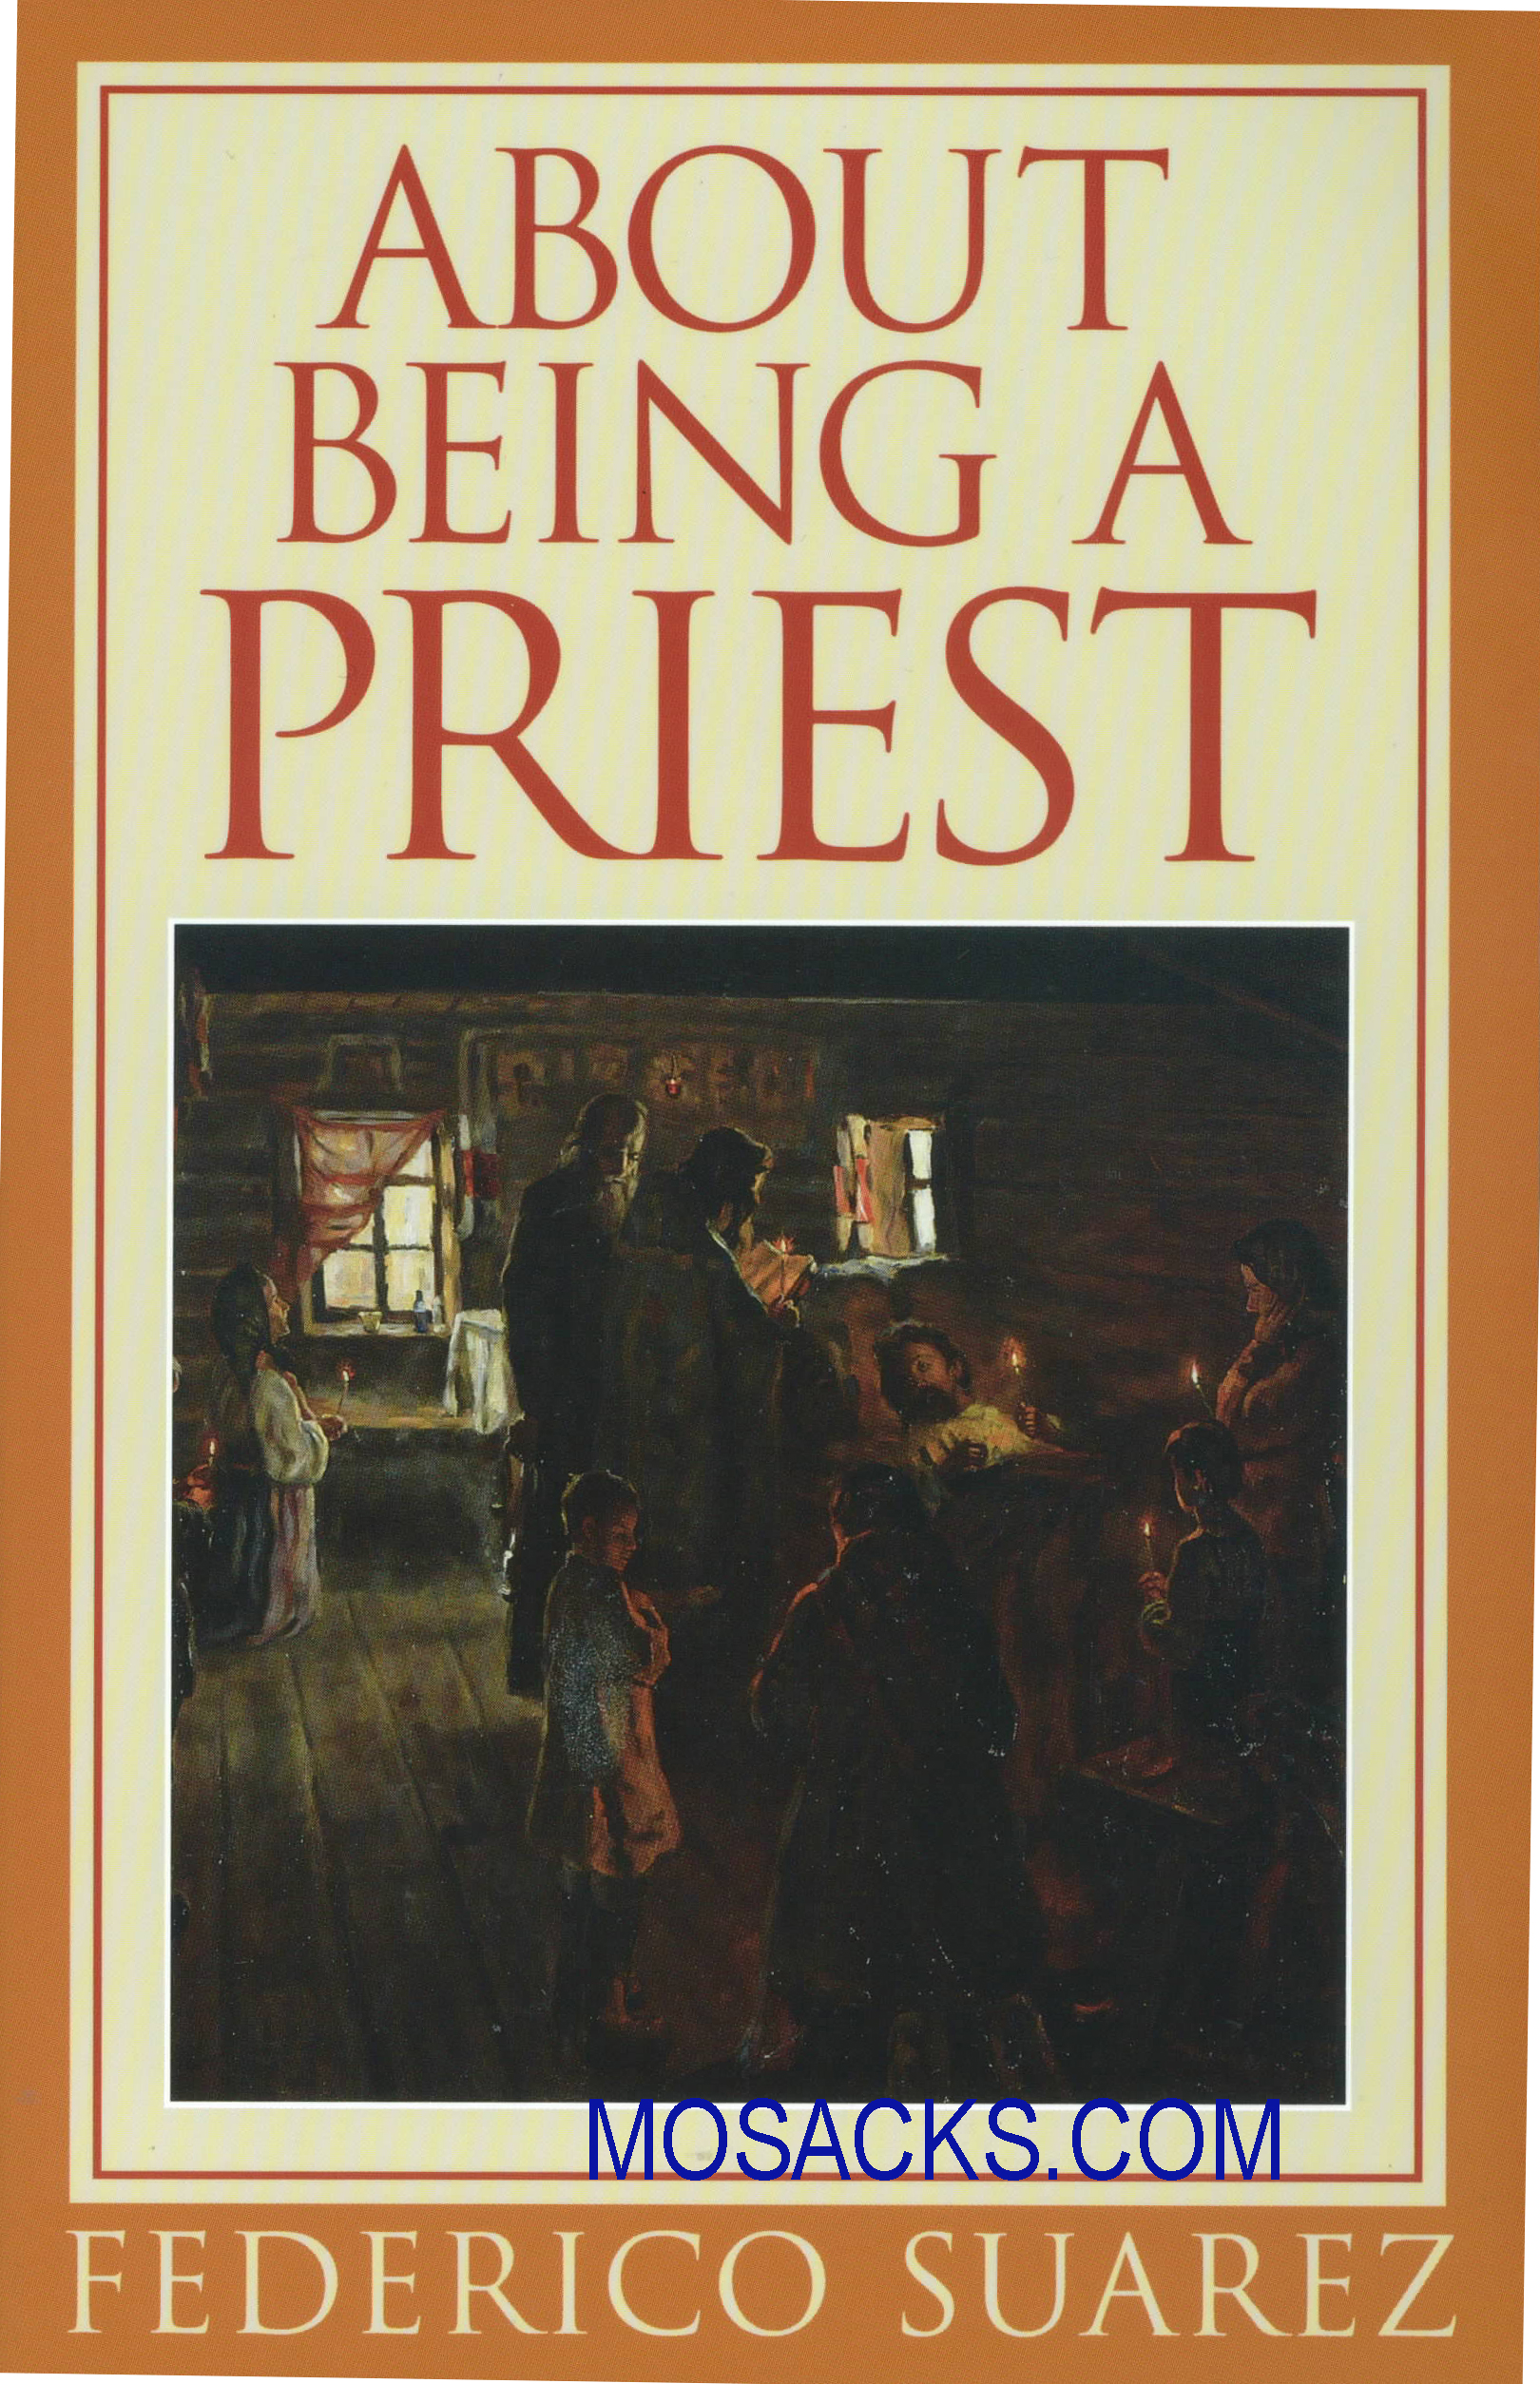 About Being A Priest by Federico Suarez 445-3288X